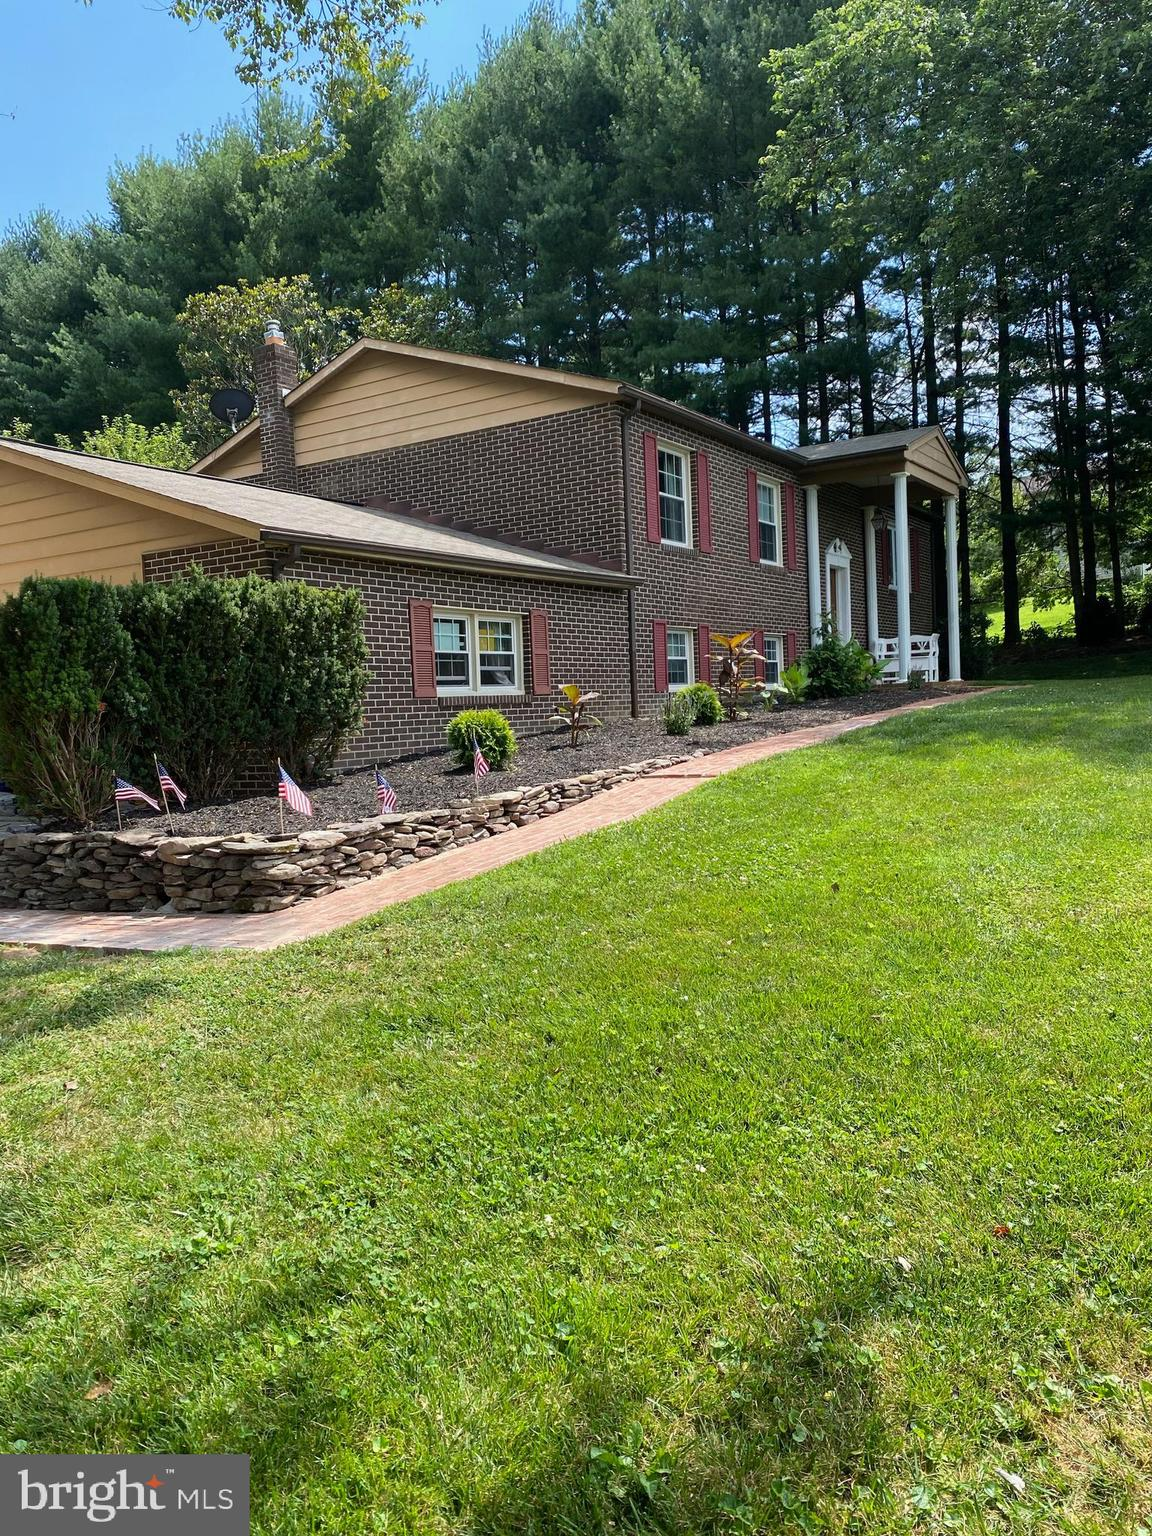 Welcome Home to this  country neighborhood, but close to Bel Air,  the property is on an acre of land with a fenced yard, great views  from the living room,   Crown molding and Chair rail  in the living room, dining room, and hallway.  Hardwood throughout  main level,   Some new  paint through out the house, Kitchen has trending blue gray color cabinet with white subway backsplash, new counter top, new floor  along with SS appliances.  The three bedrooms are on the main level,  Both master half bath and hall bath have been updated. Lower  level also has an updated full bathroom,  laundry room, (laundrychute from master bedroom to laundry room.   There is also a wood burning stove  for cold winters.  If you need a possible in-law suite/separate living,  this  property has the potential for it.  Also, has a whole house natural gas  generator, and plenty of storage, over sized two car garage with customized shelving, plenty of driveway parking,  room to put a personal garden ,  and two level patio for entertaining.